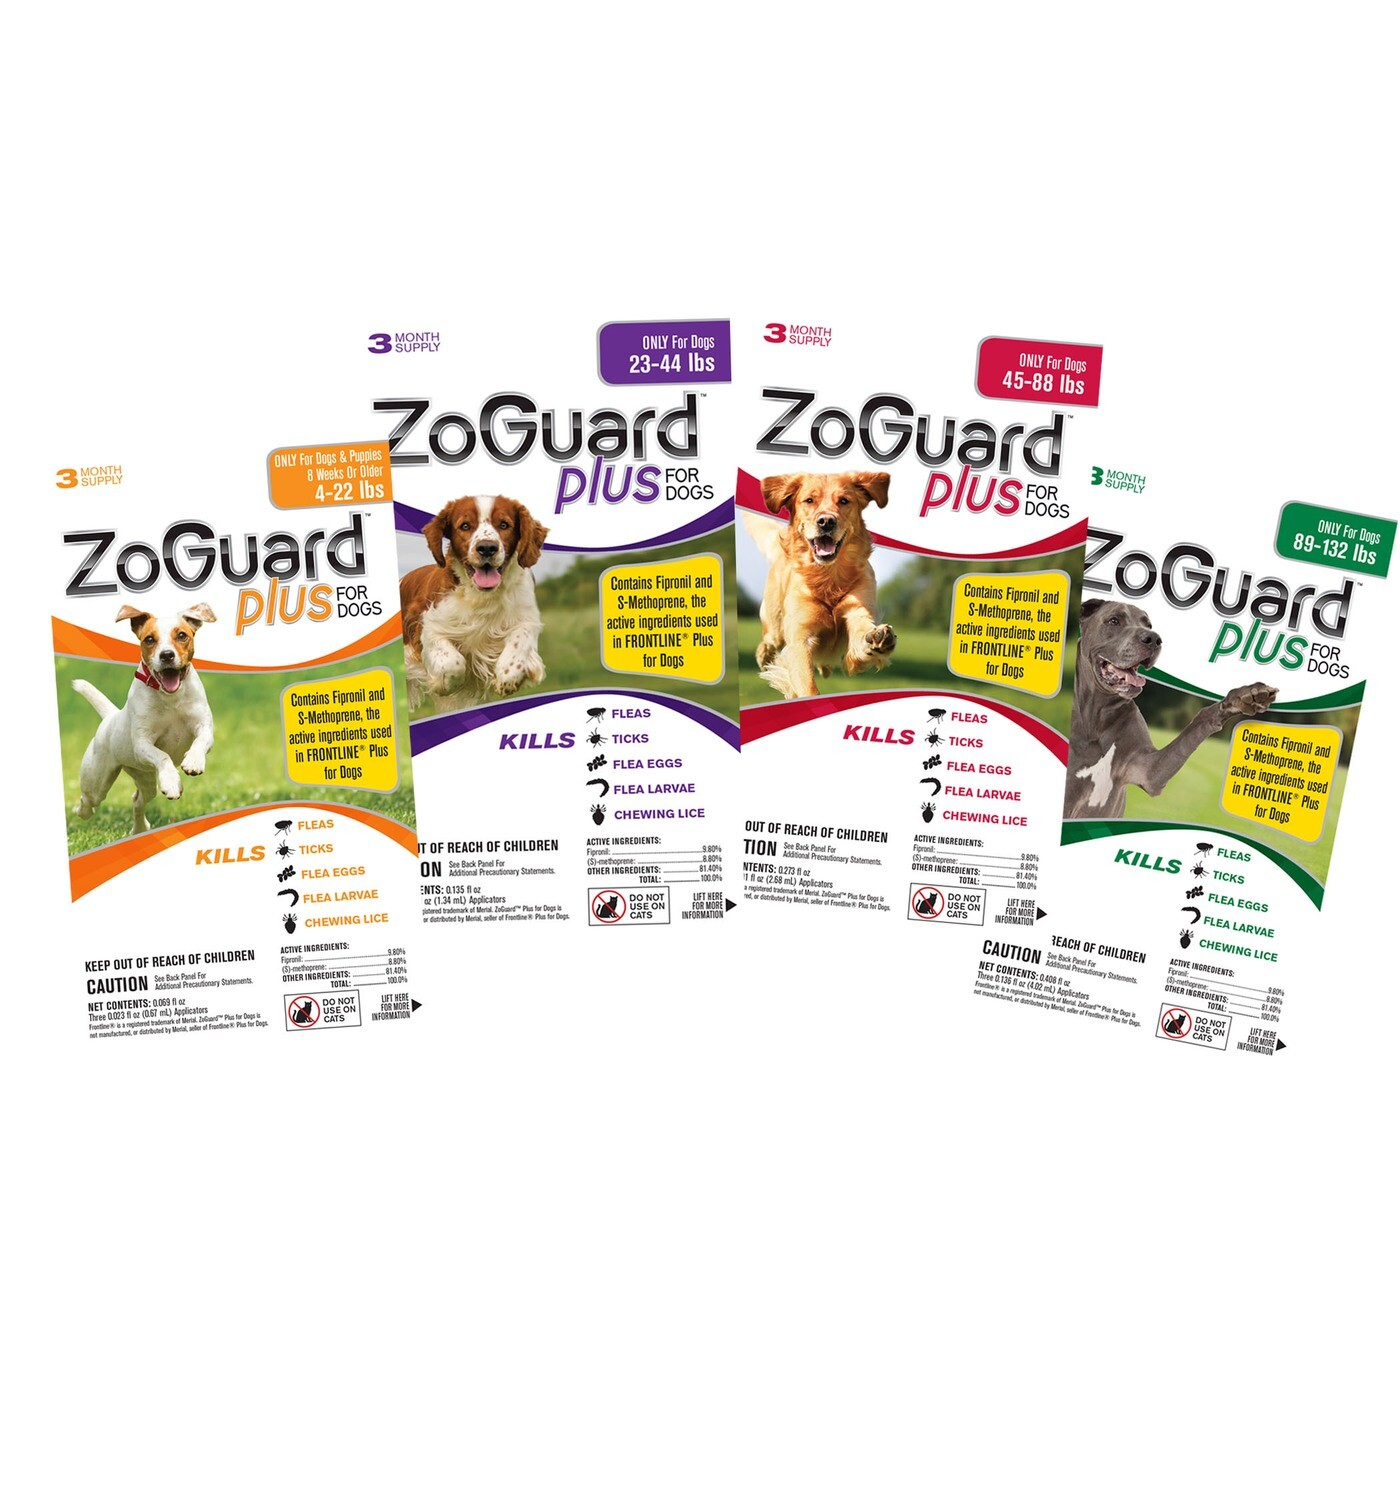 Zoguard Plus